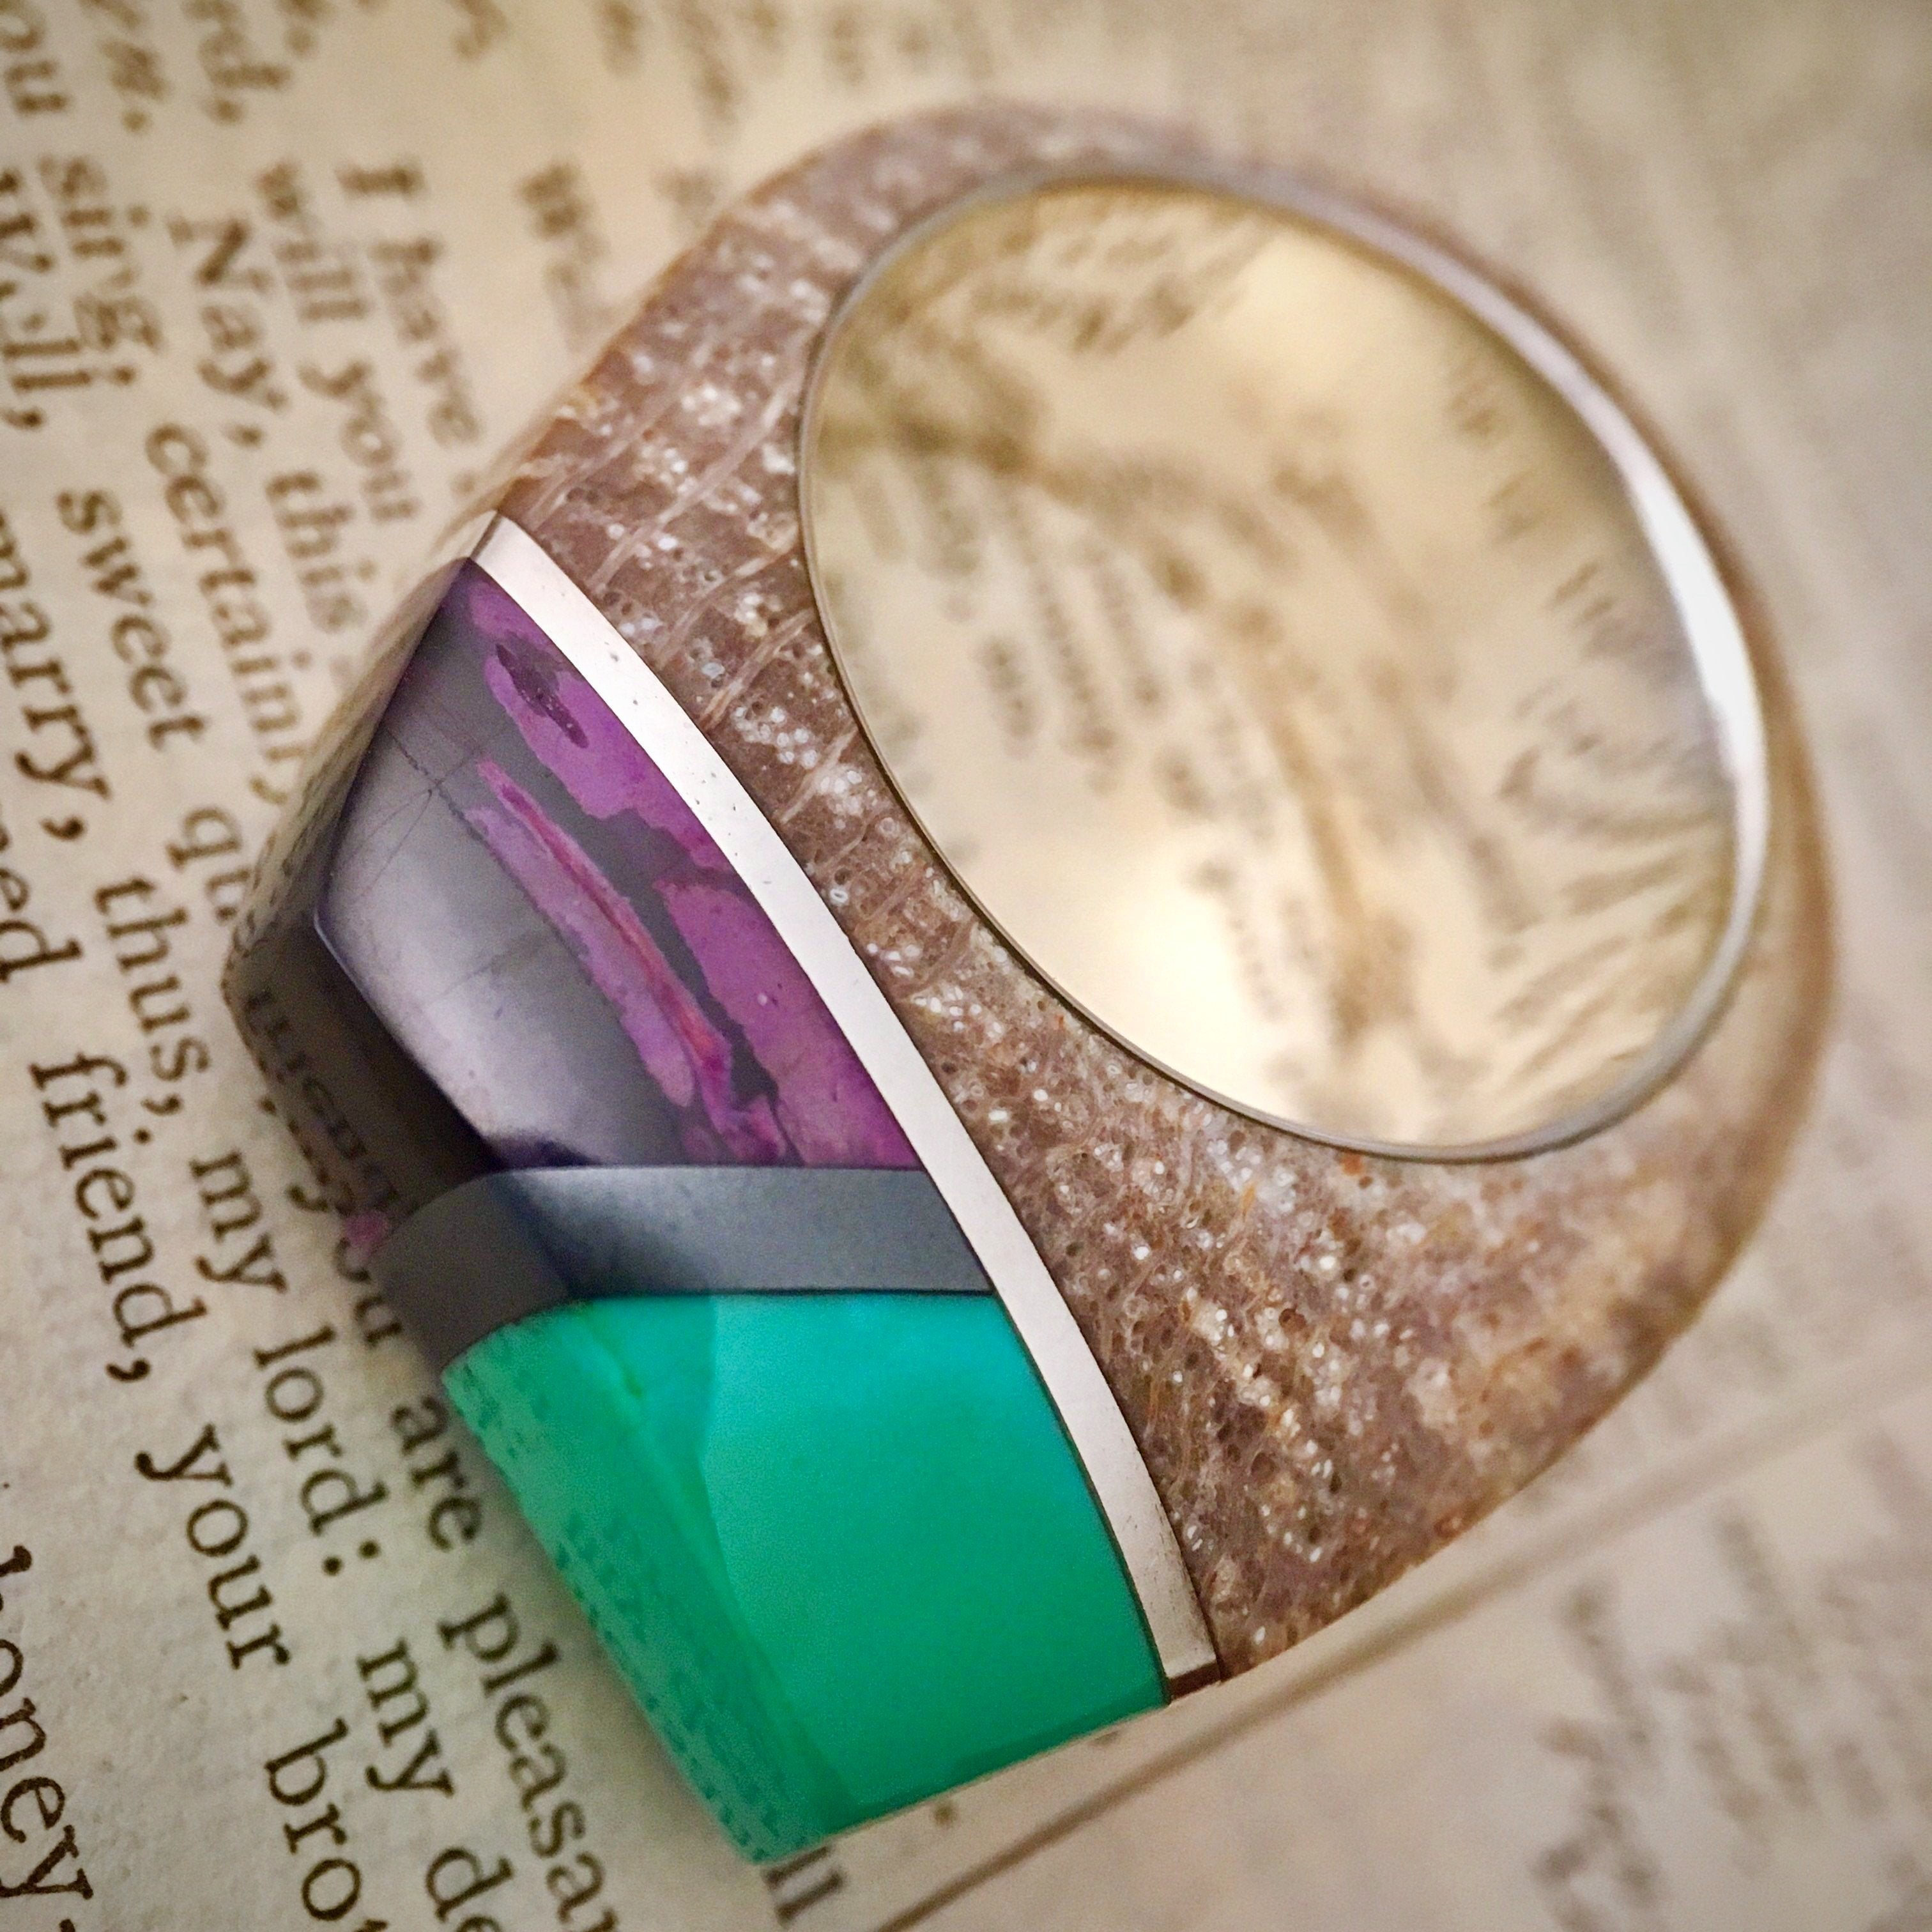 Petrified Wood, Turquoise, Hematite, Sugilite and Silver Ring in Men's Size